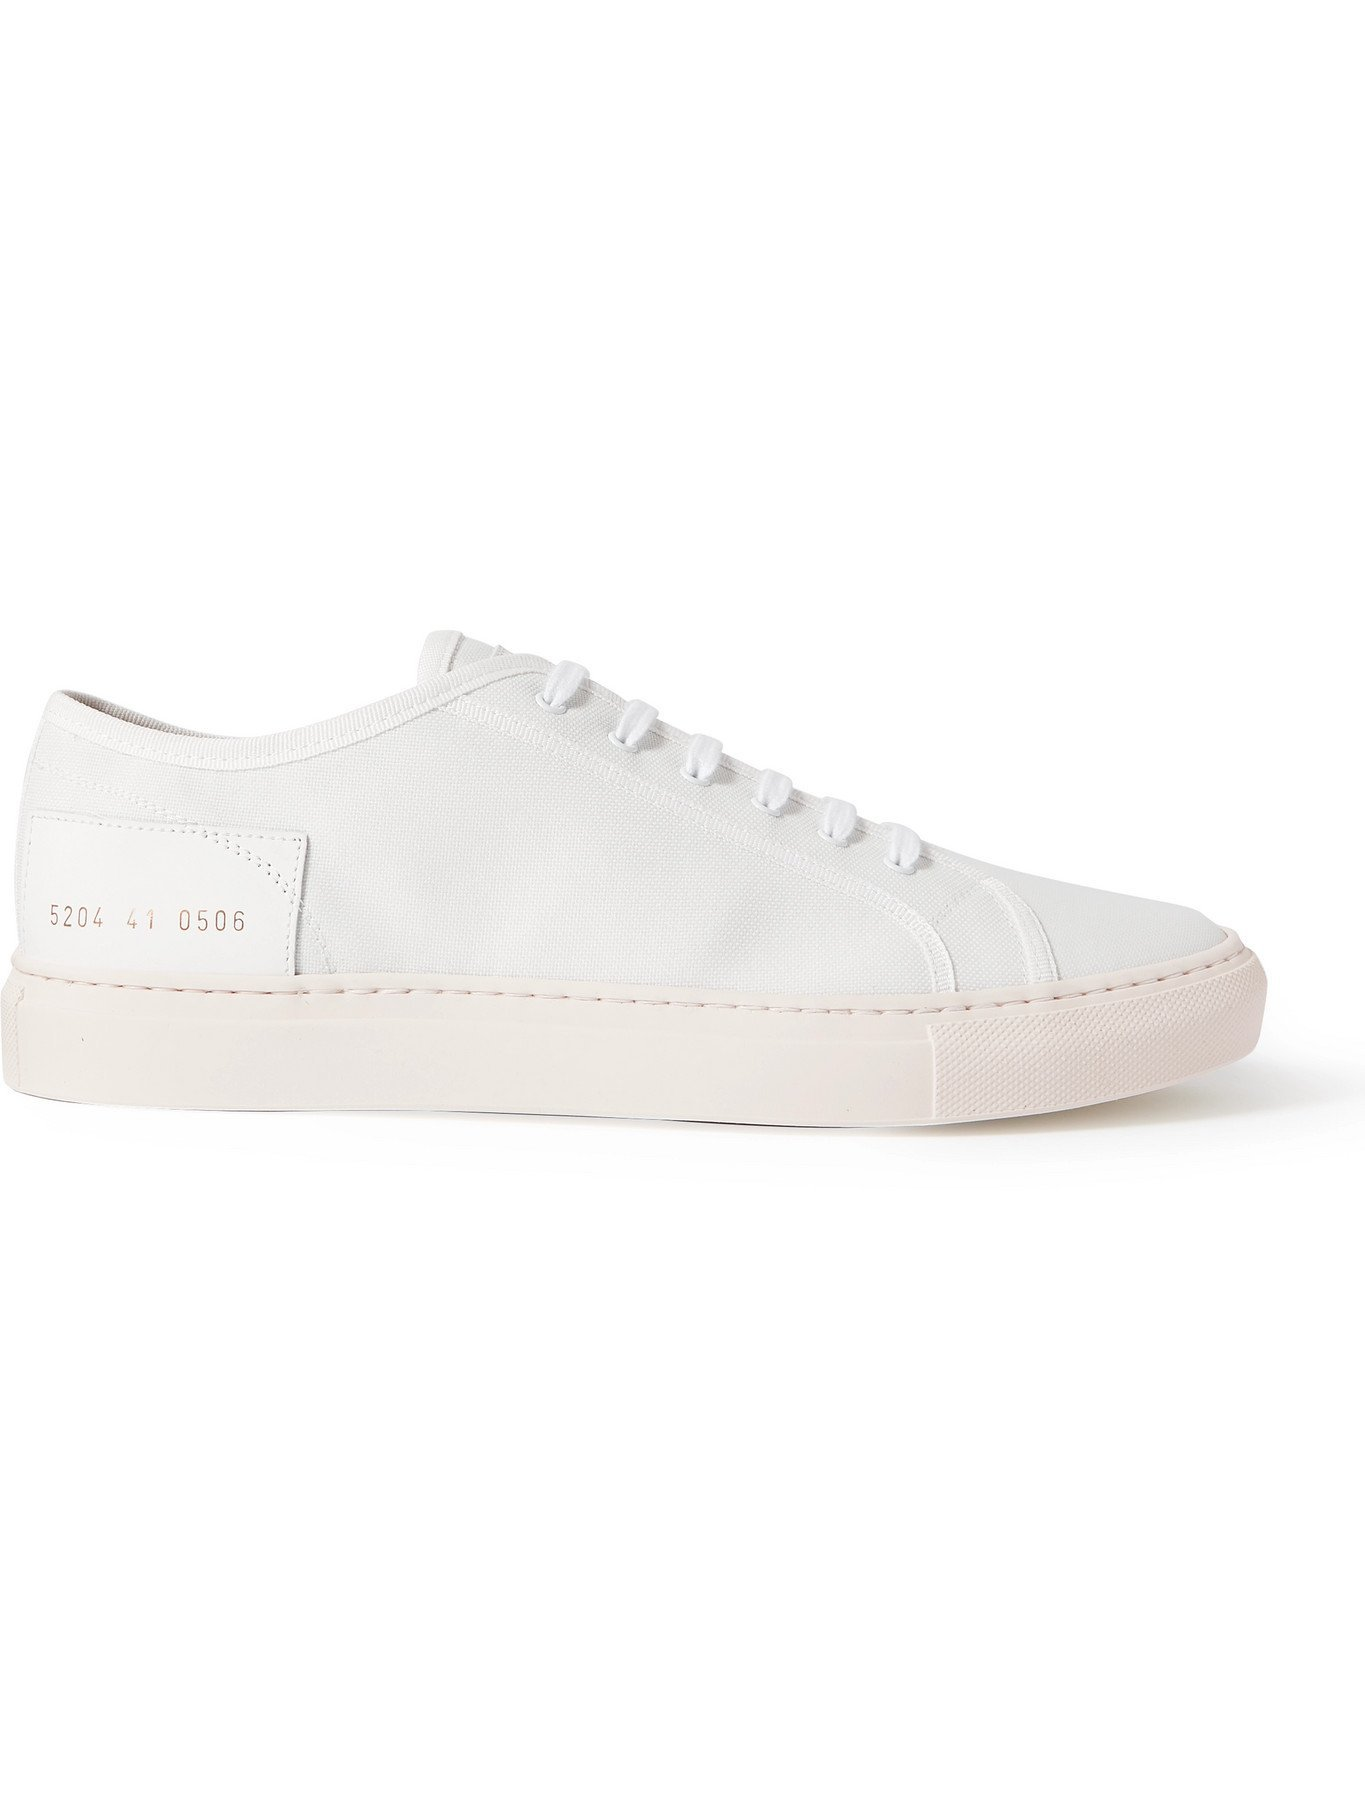 Photo: COMMON PROJECTS - Tournament Low Leather-Trimmed Nylon Sneakers - White